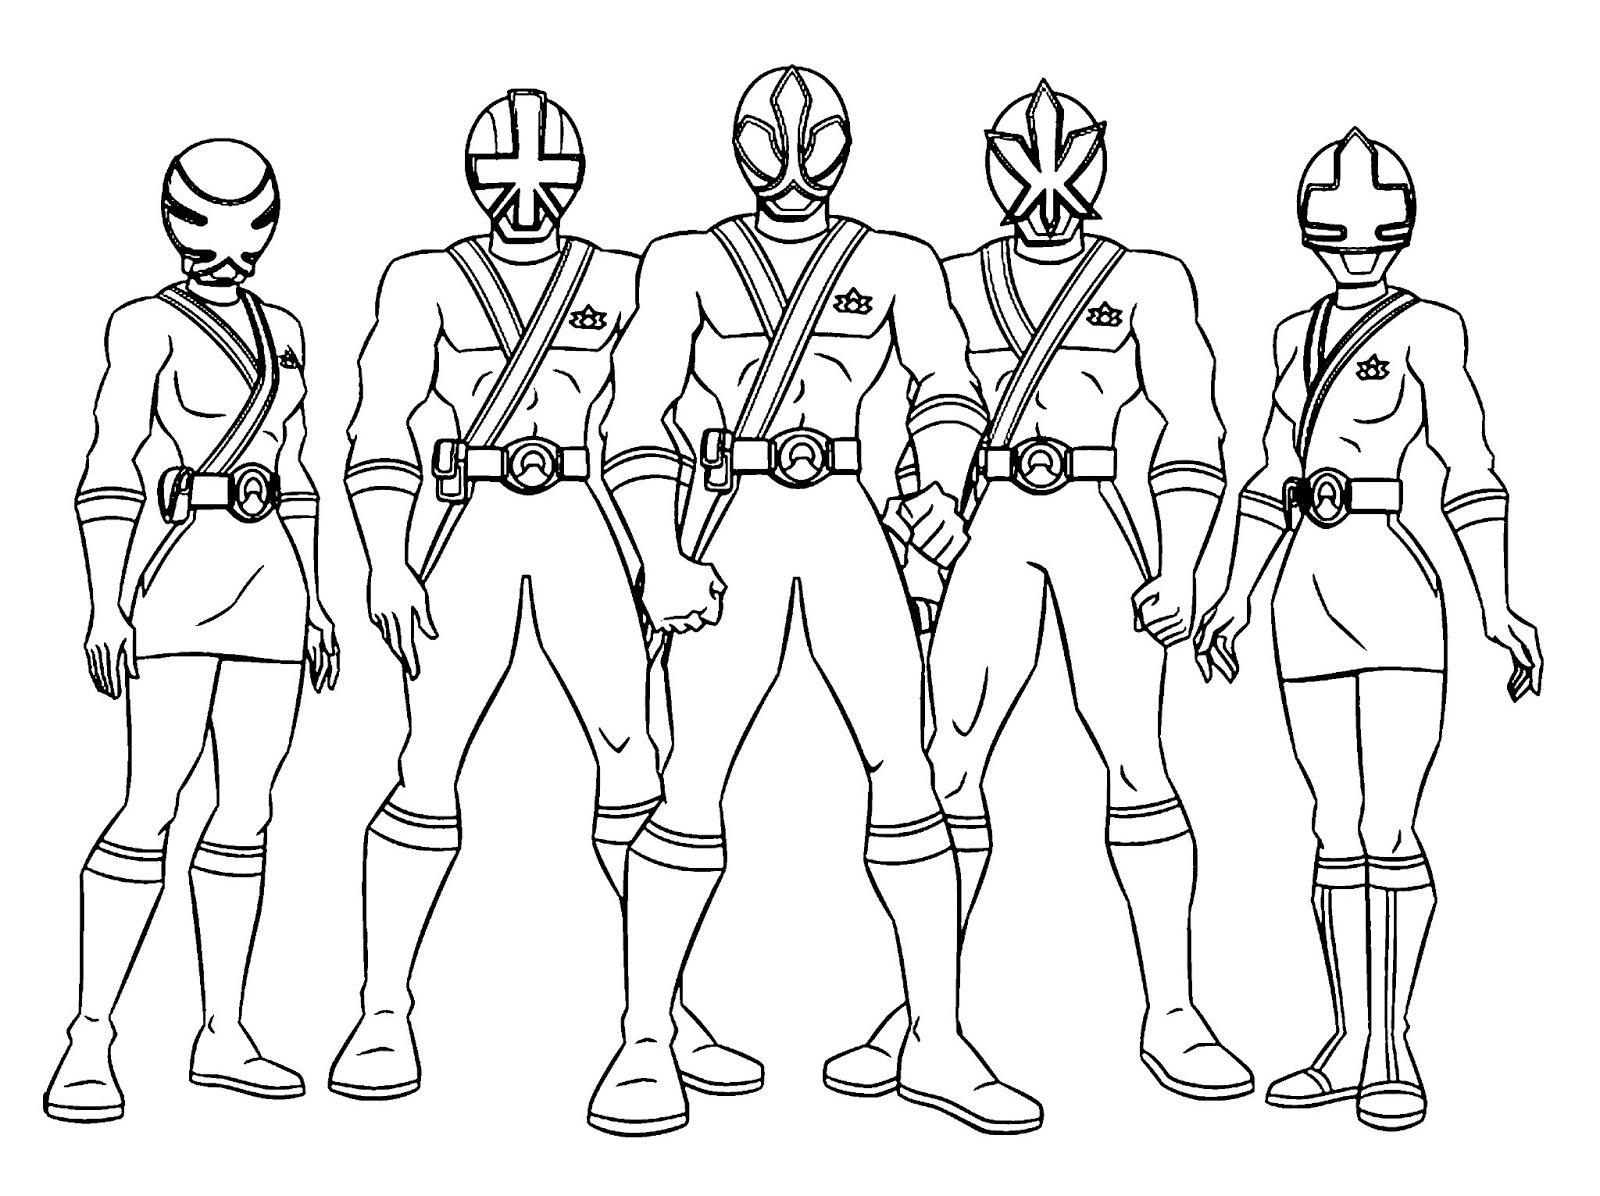 Power_Rangers_Coloring_Pages_04